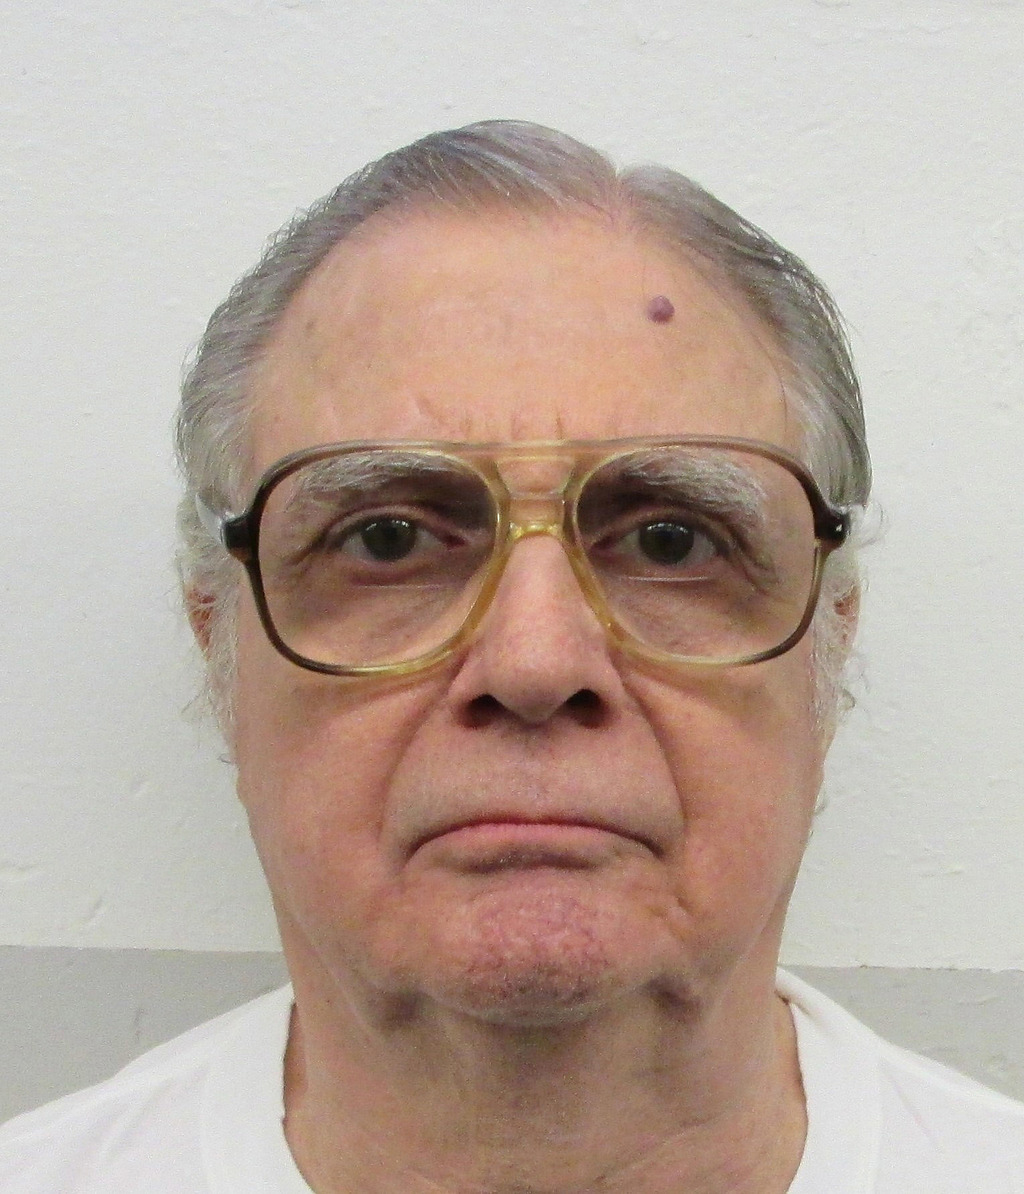 After execution is postponed 7 times, man to be put to death